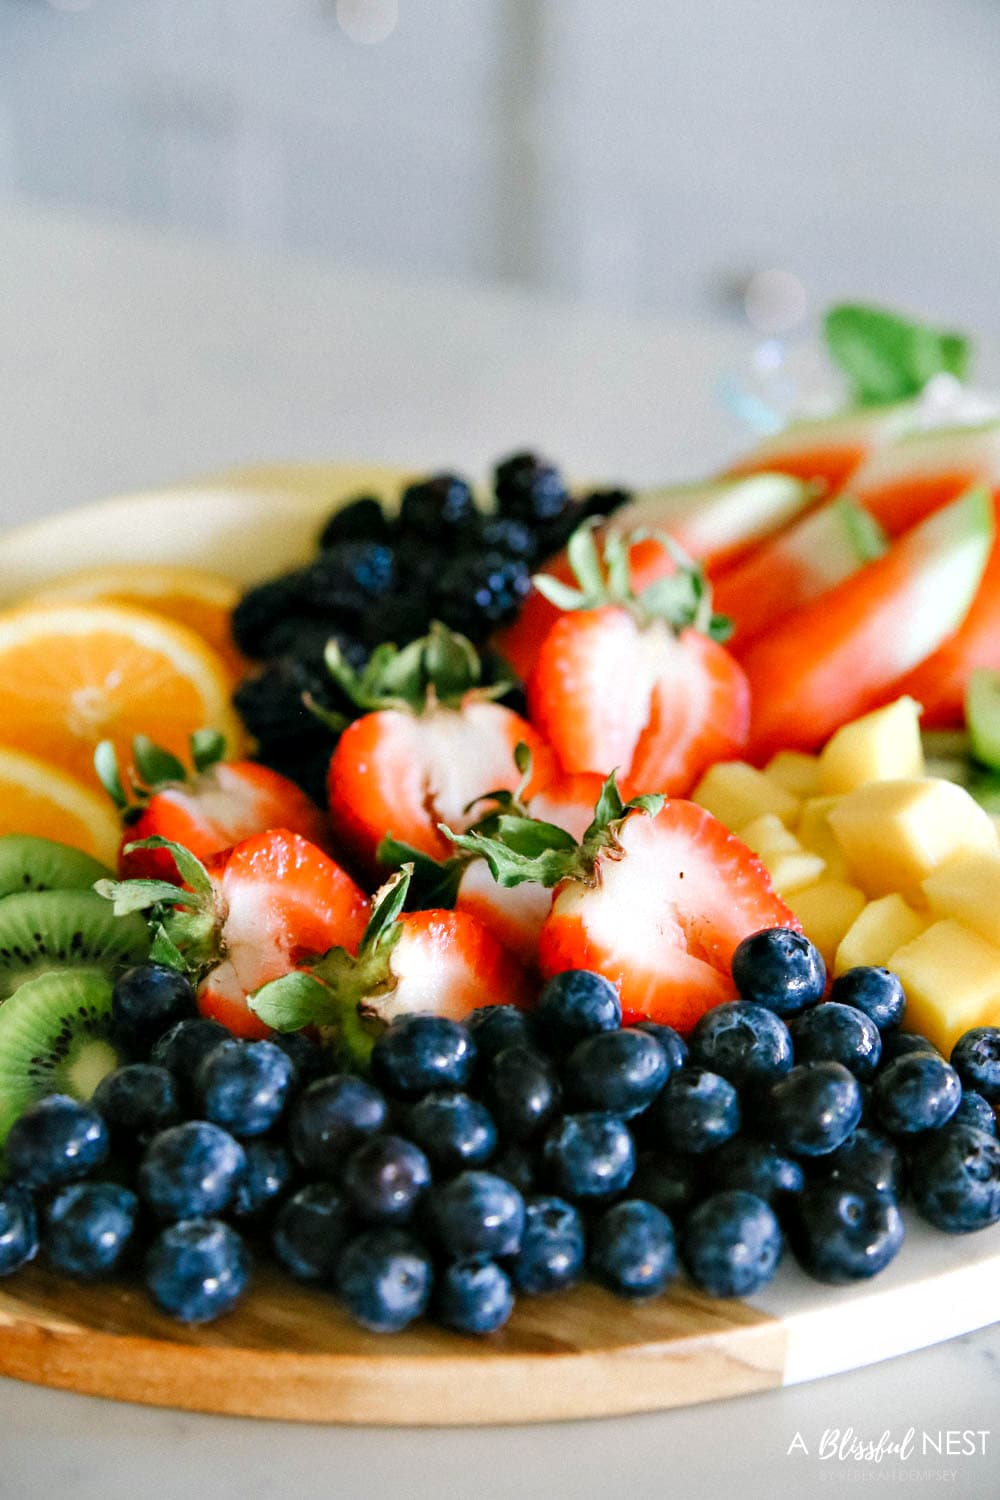 This beautiful fruit charcuterie board is so good to make on the weekends, for brunch, as an appetizer, and use all your favorite colorful fruits. #ABlissfulNest #charcuterieboard #fruitboard #fruitrecipe